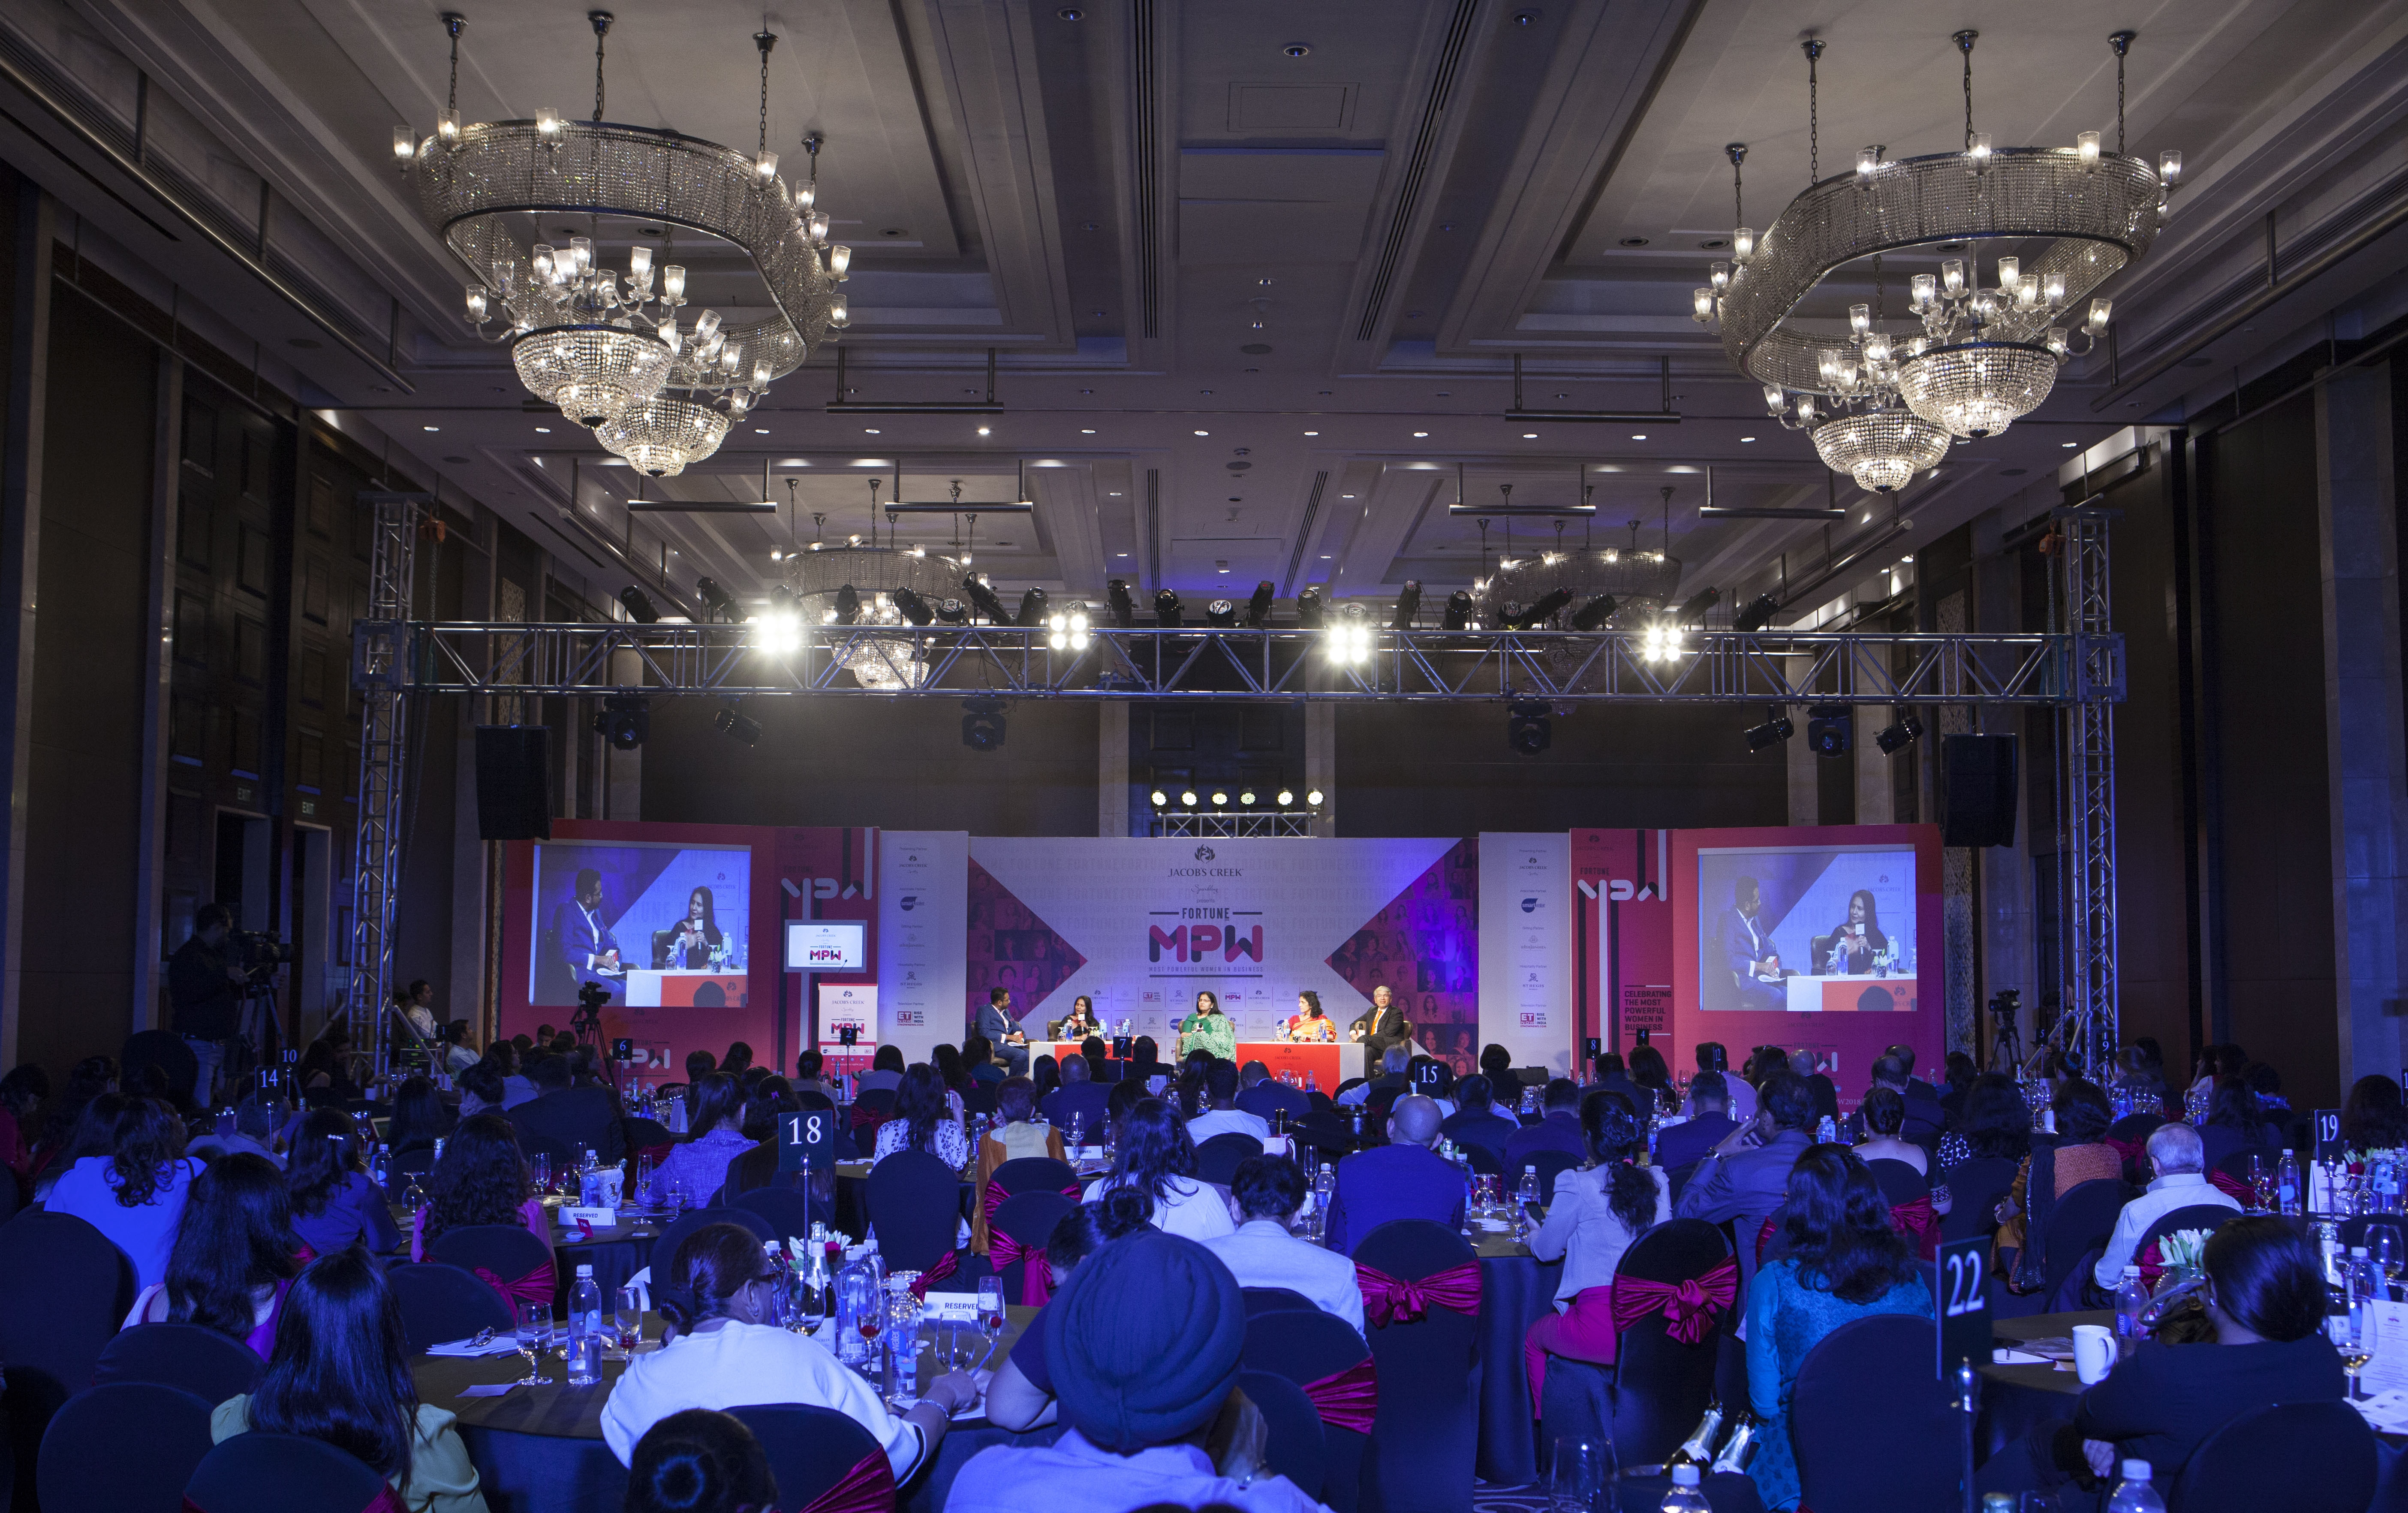 The who's who of India Inc. gathered to raise a toast to India's finest women business leaders.